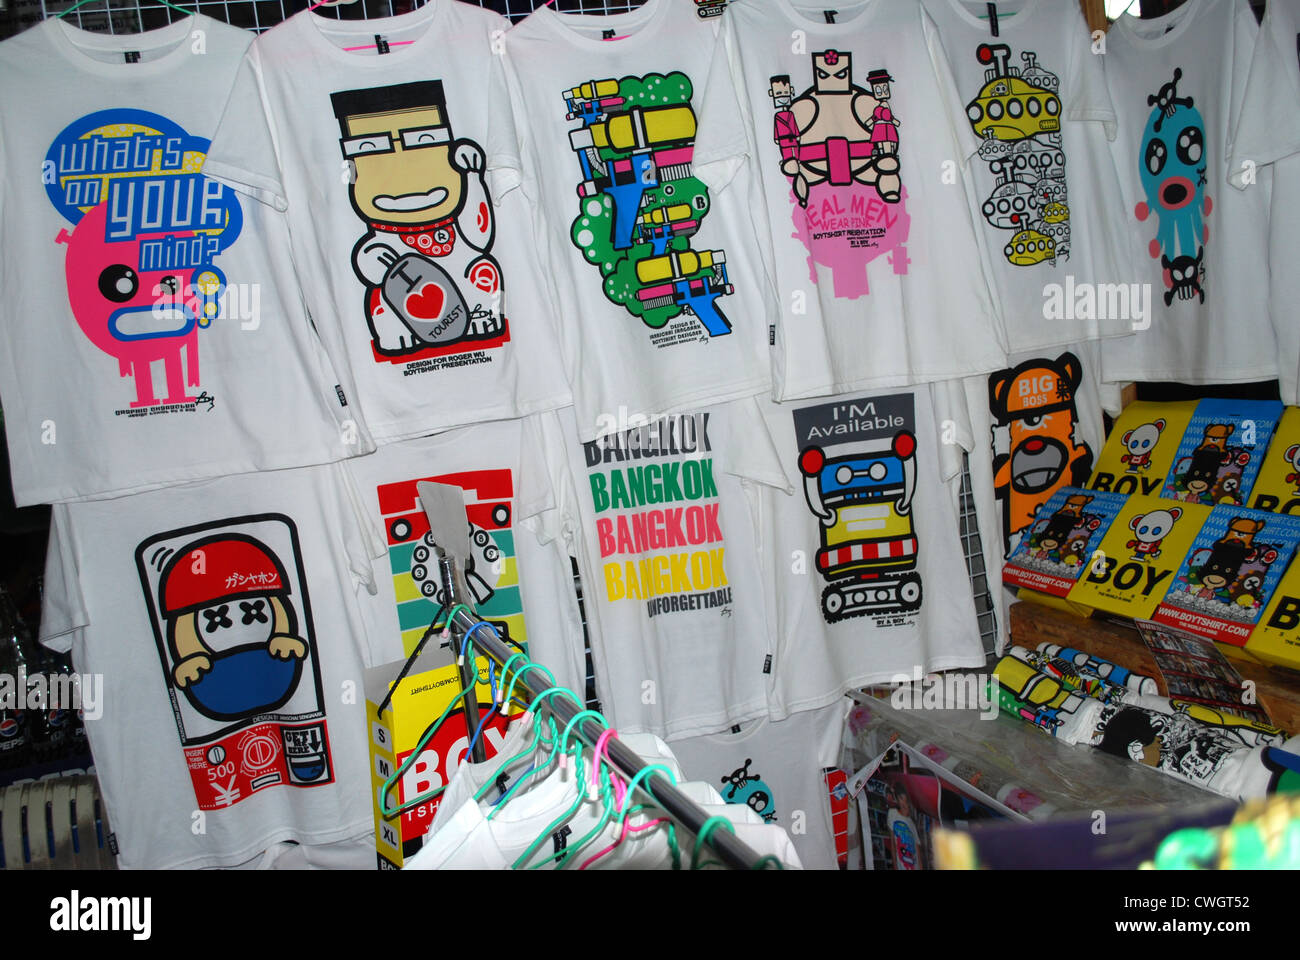 tee shirts different designs for tourists - Stock Image